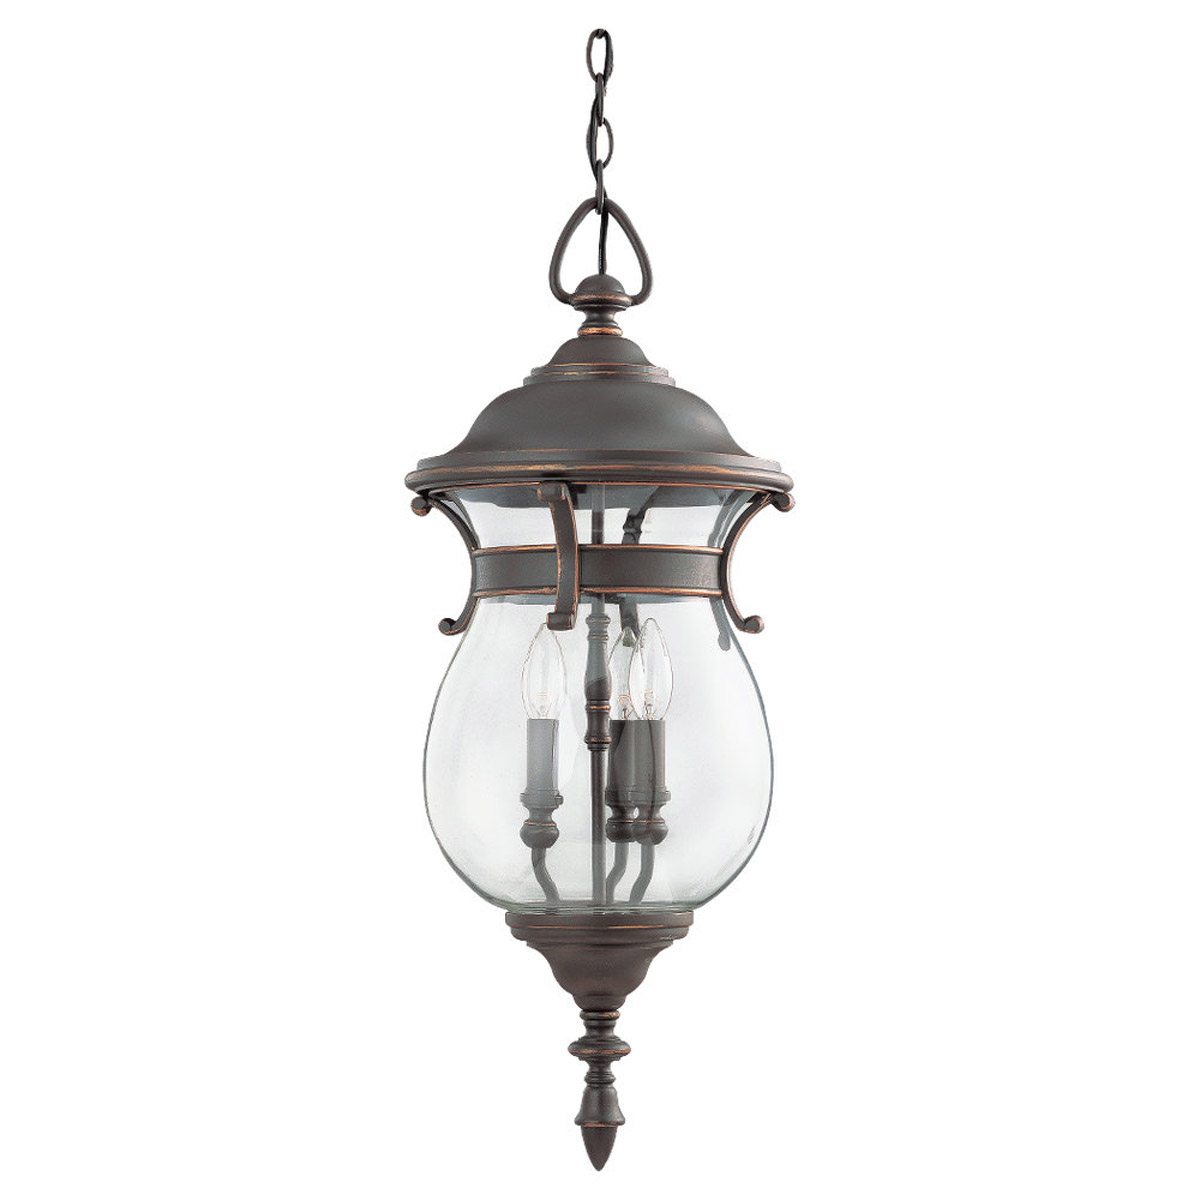 Sea Gull Lighting Triumphant 3 Light Outdoor Pendant in Mojave Luster 60225-764